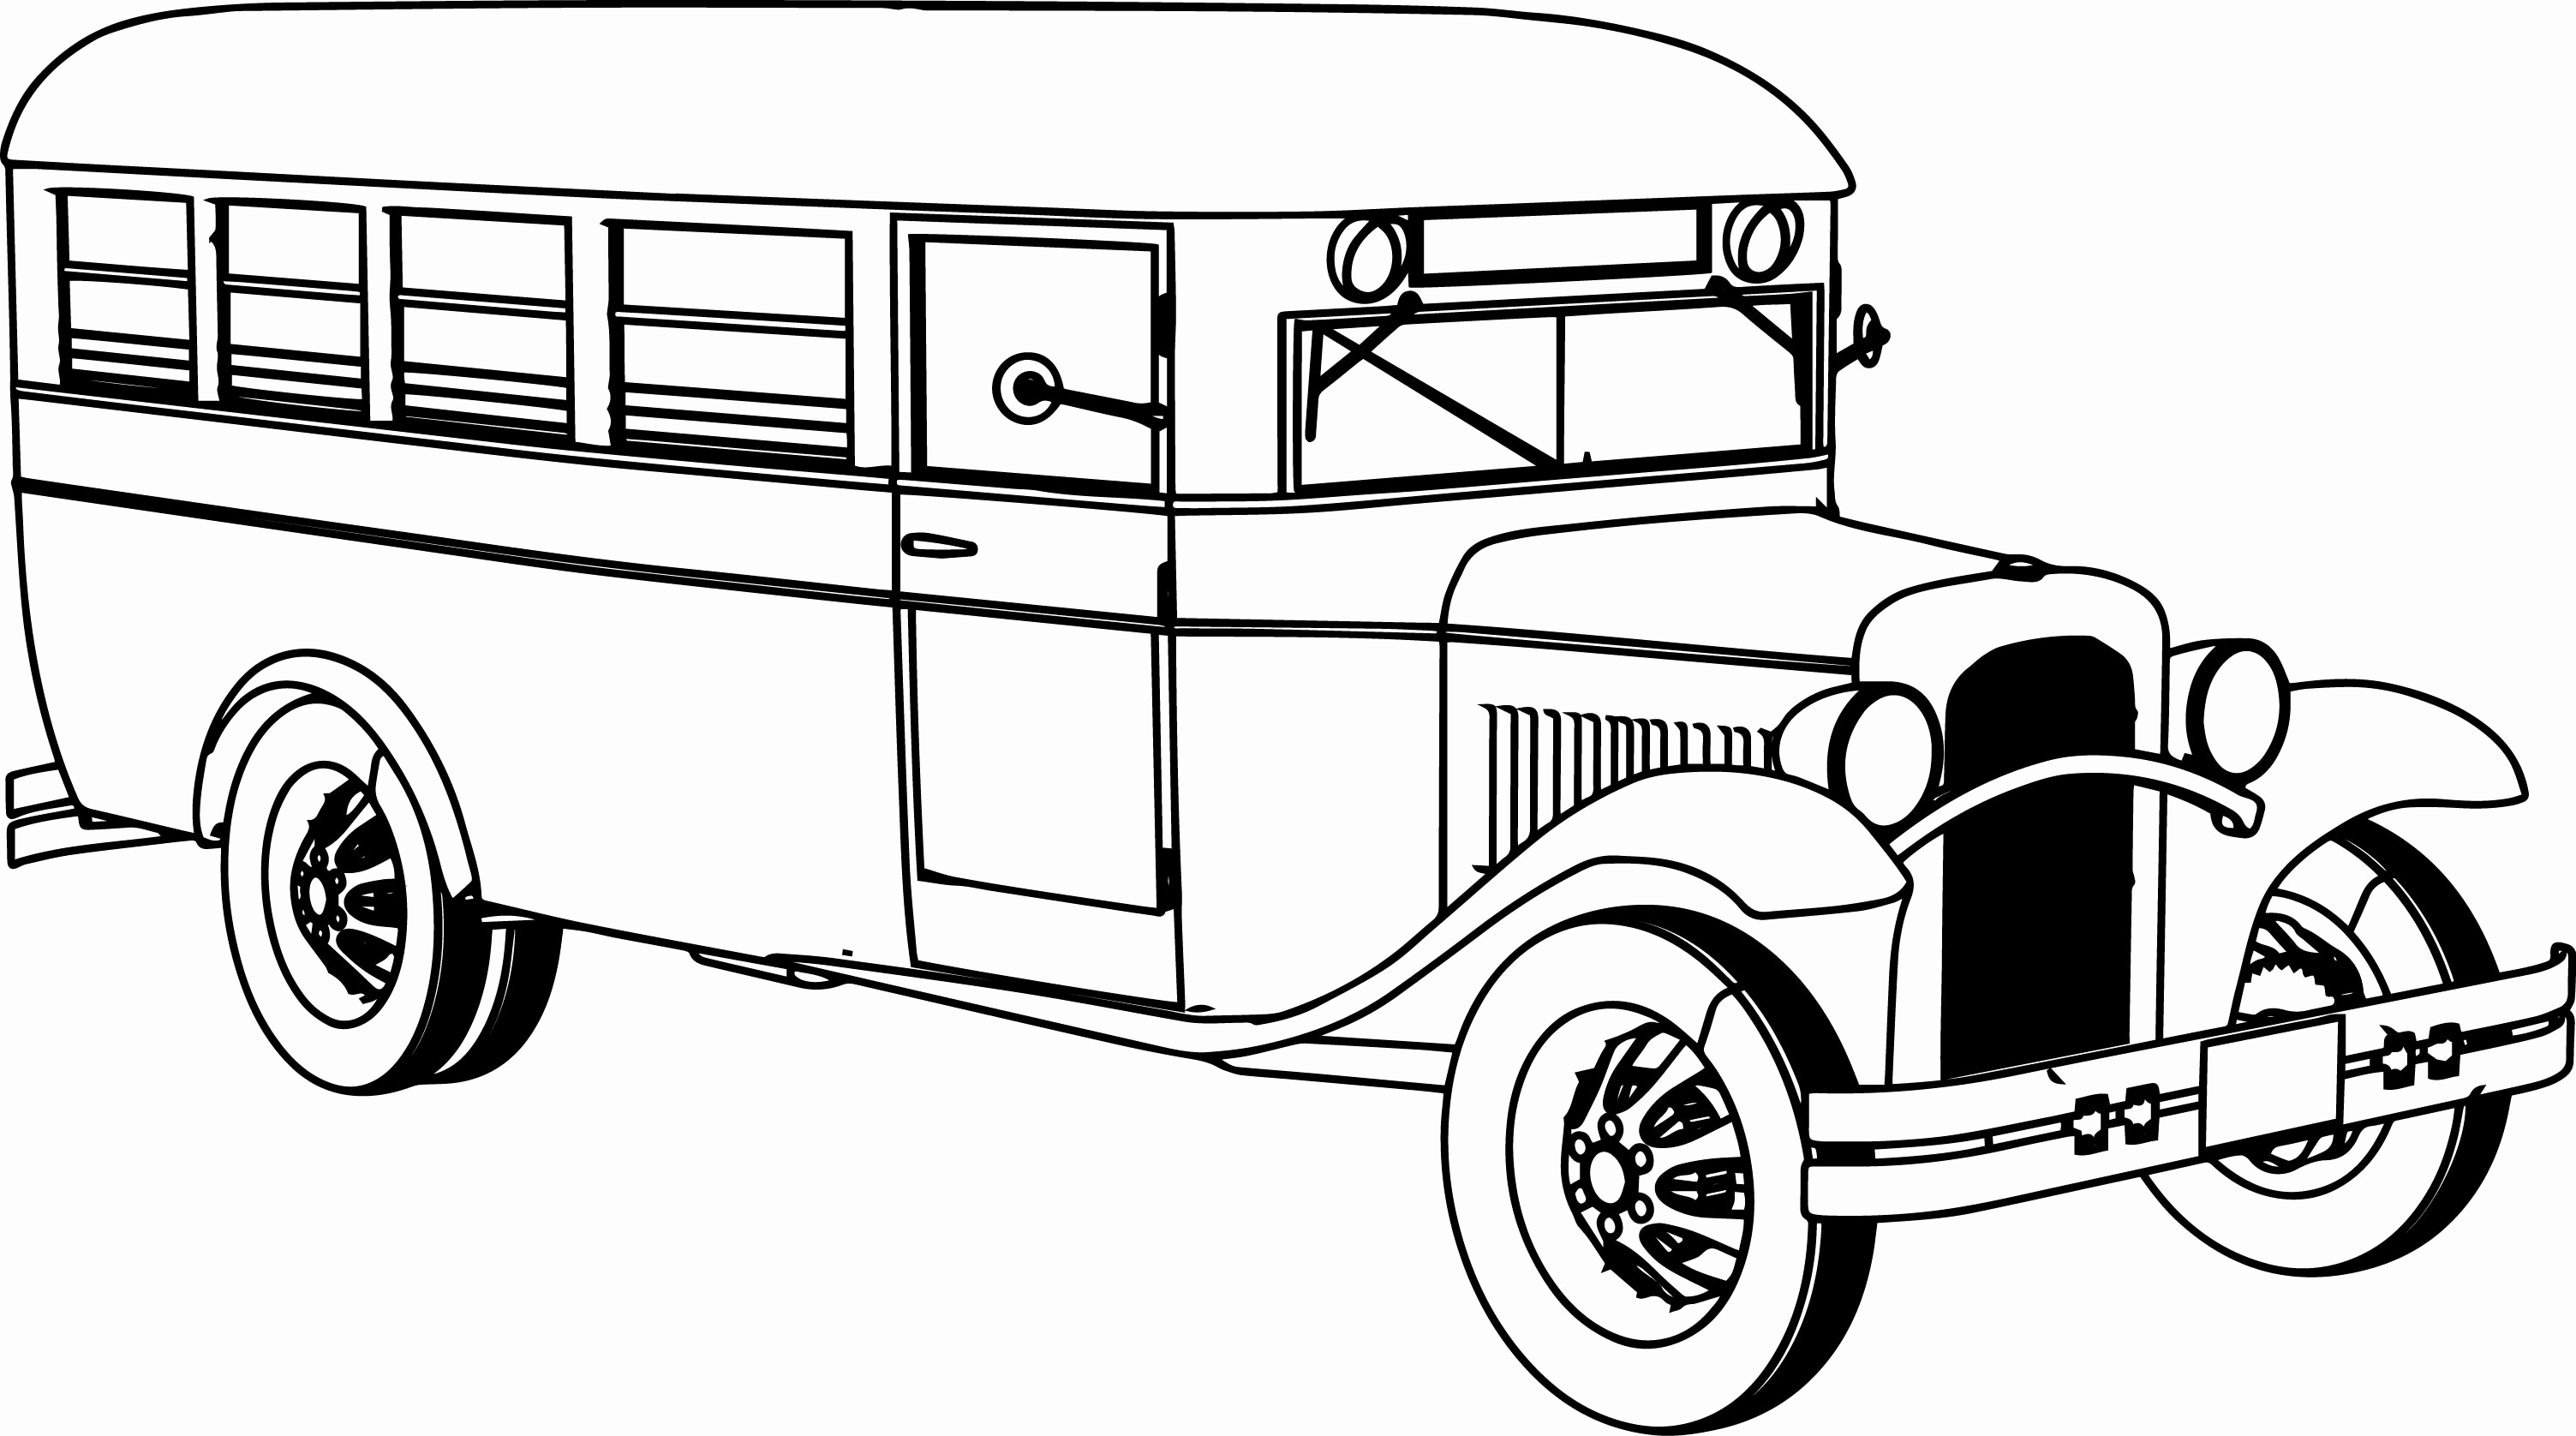 how to draw a volkswagen bus vw bus line drawing at paintingvalleycom explore bus a how volkswagen draw to